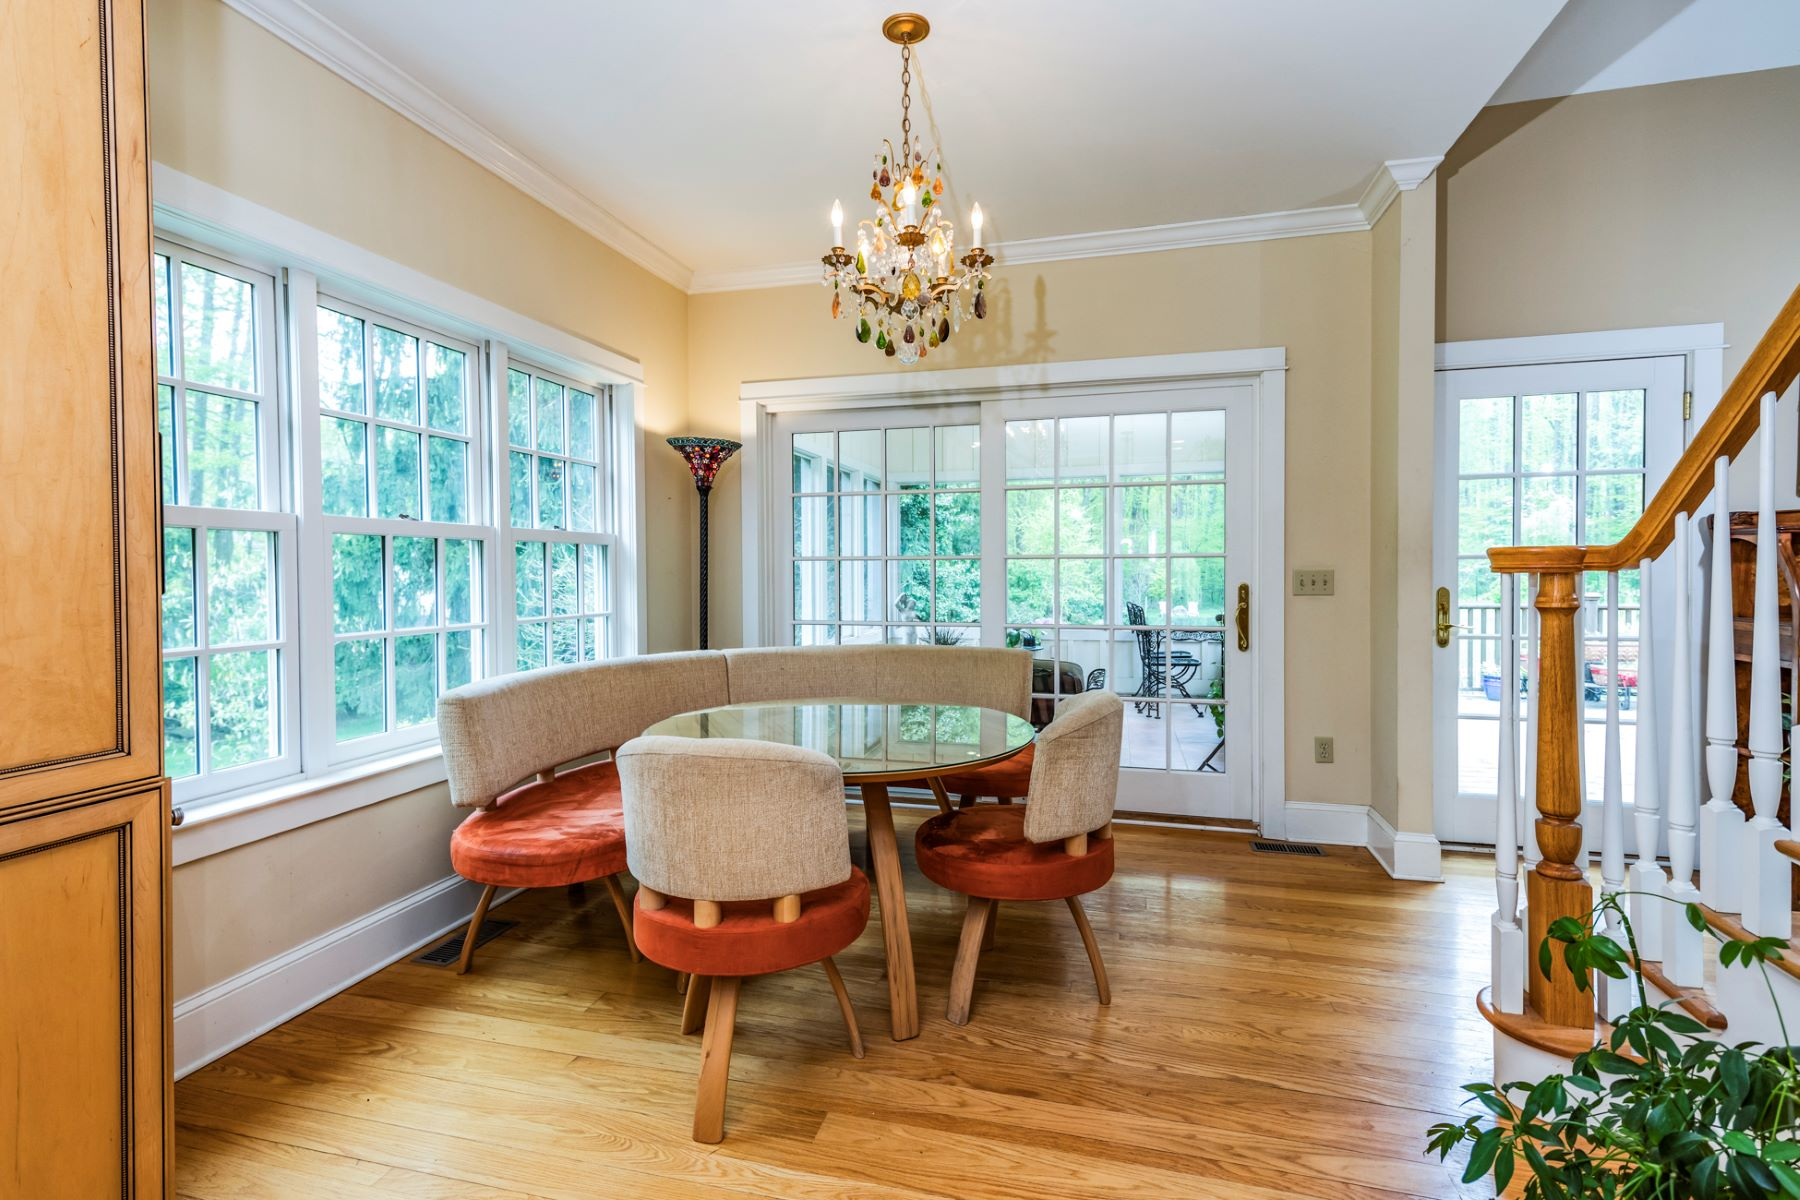 Additional photo for property listing at Storybook Beauty Moments from Schools & Shopping 508 Mount Lucas Road, Princeton, Nueva Jersey 08540 Estados Unidos